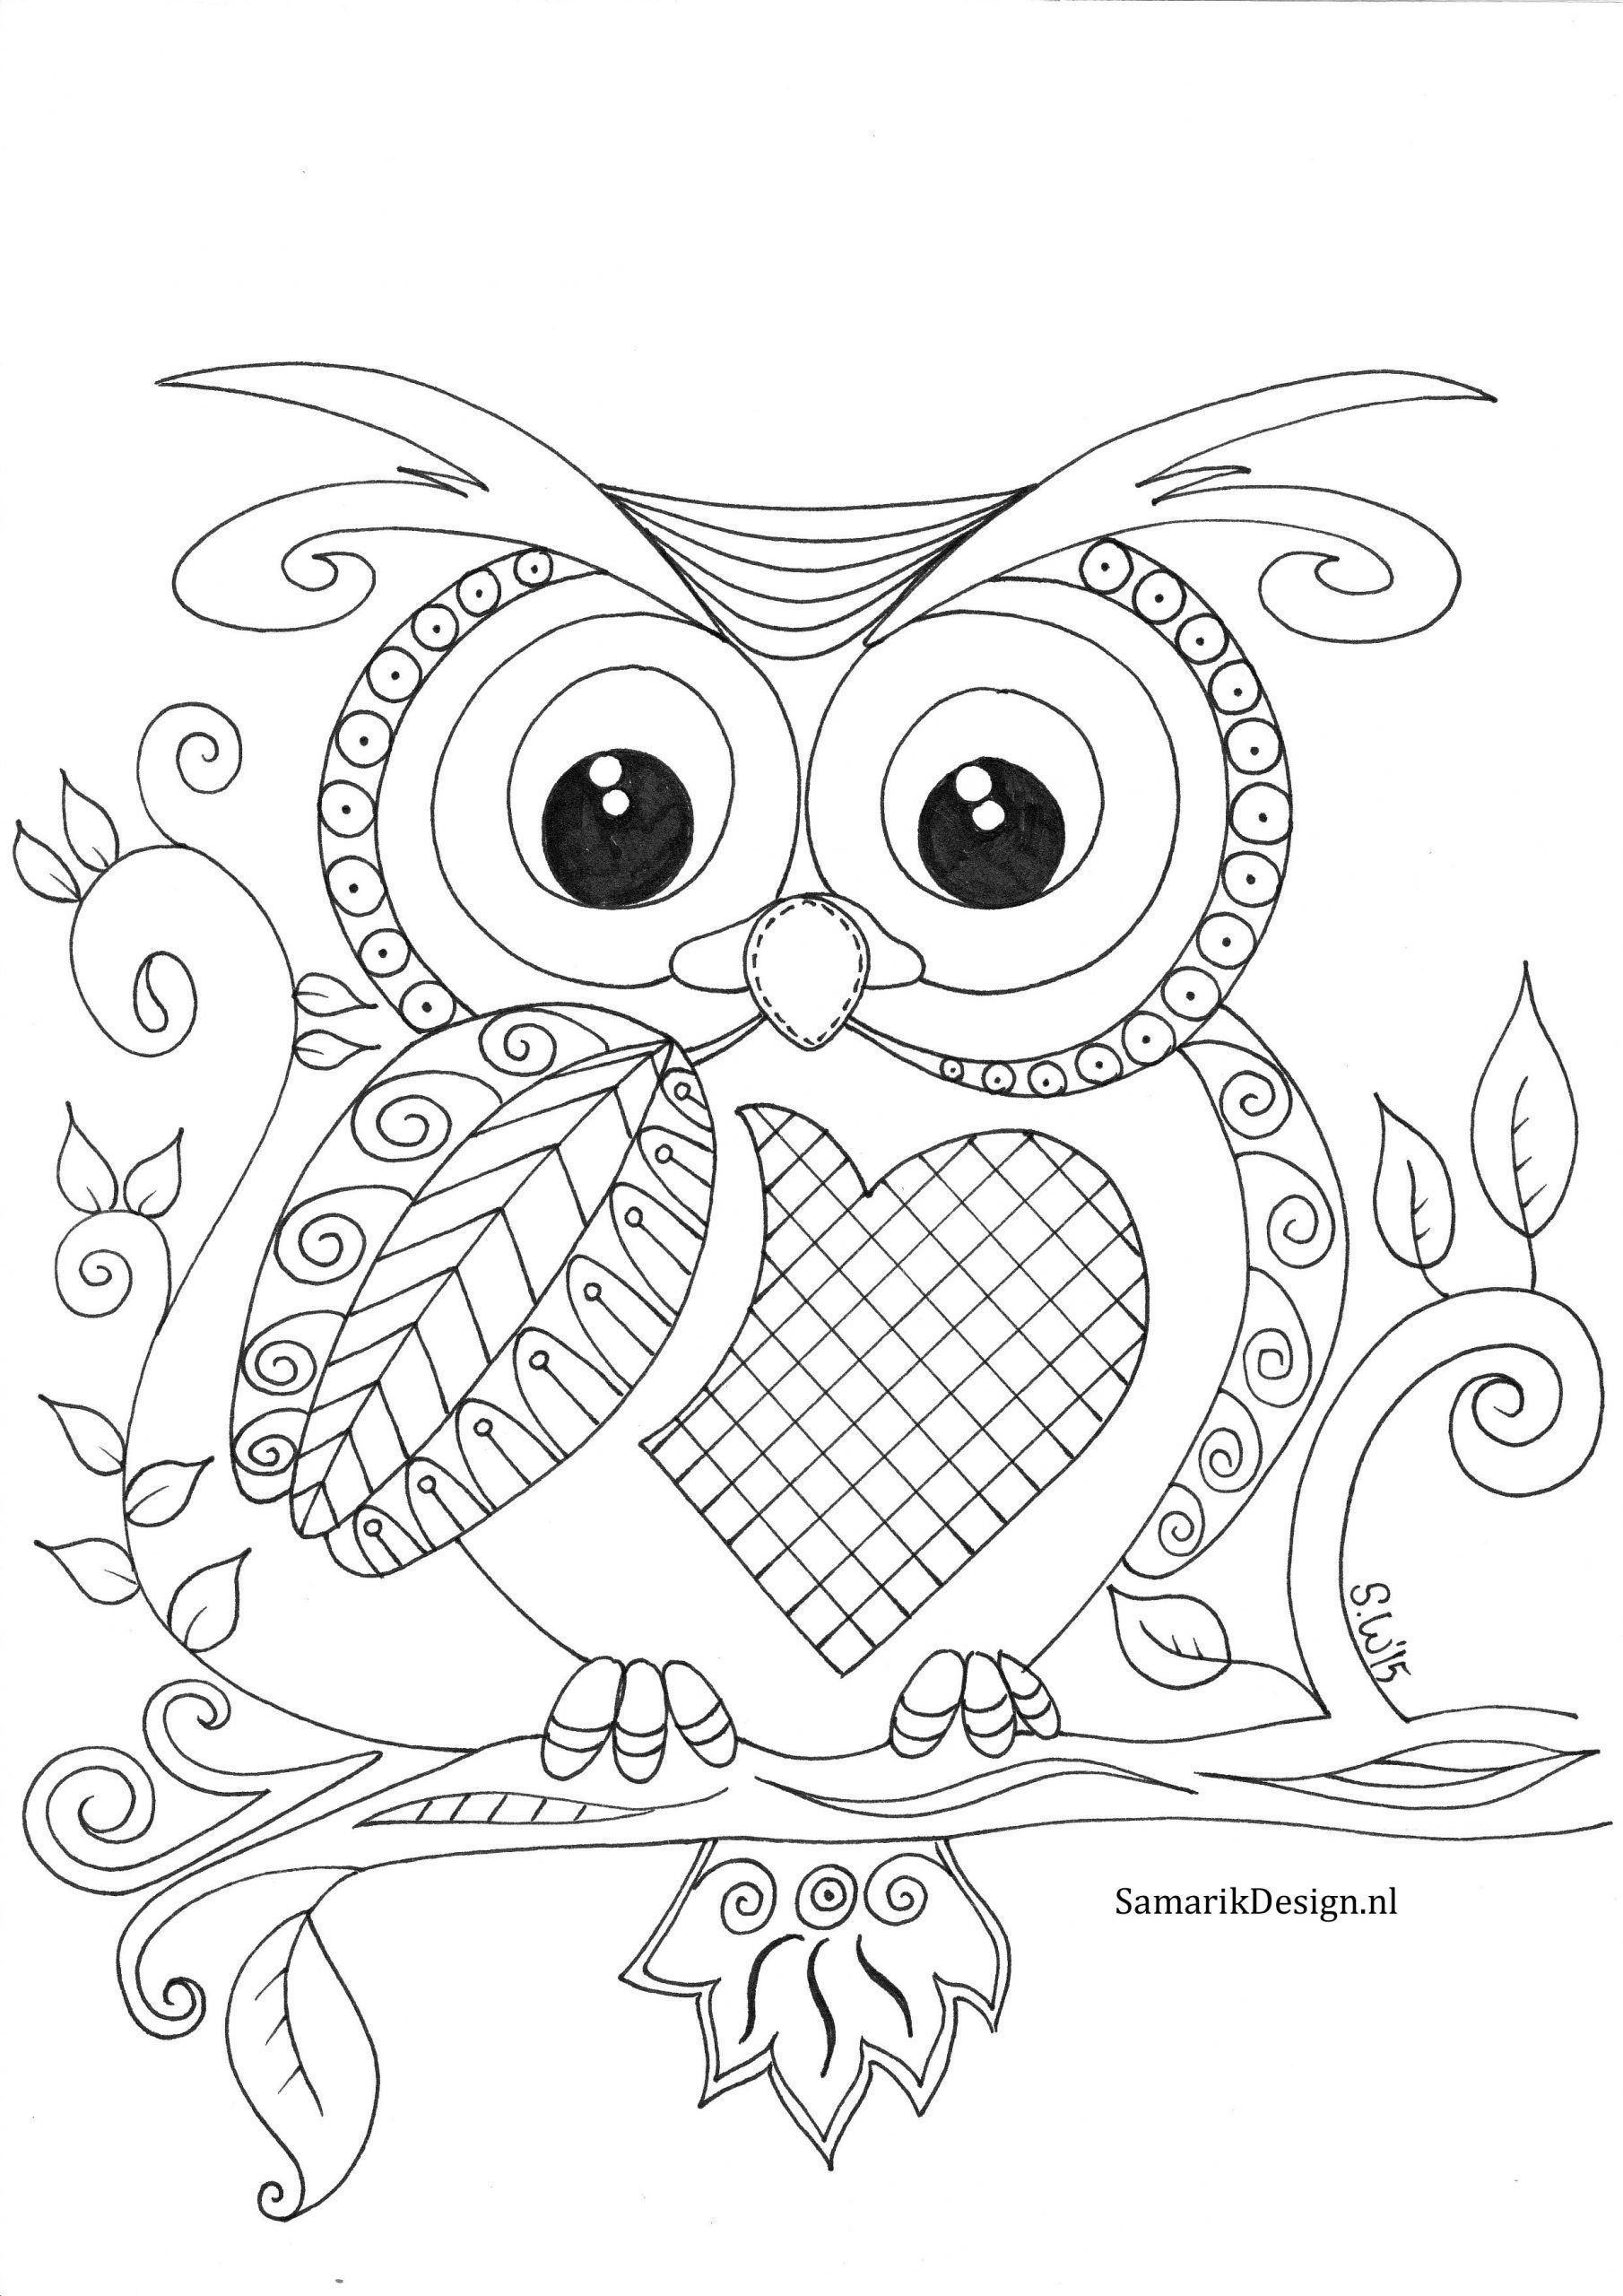 Owl Coloring Pages For Kids Owl Coloring Pages For Adults At Getdrawings Owl Coloring Pages Coloring Books Mandala Coloring Pages